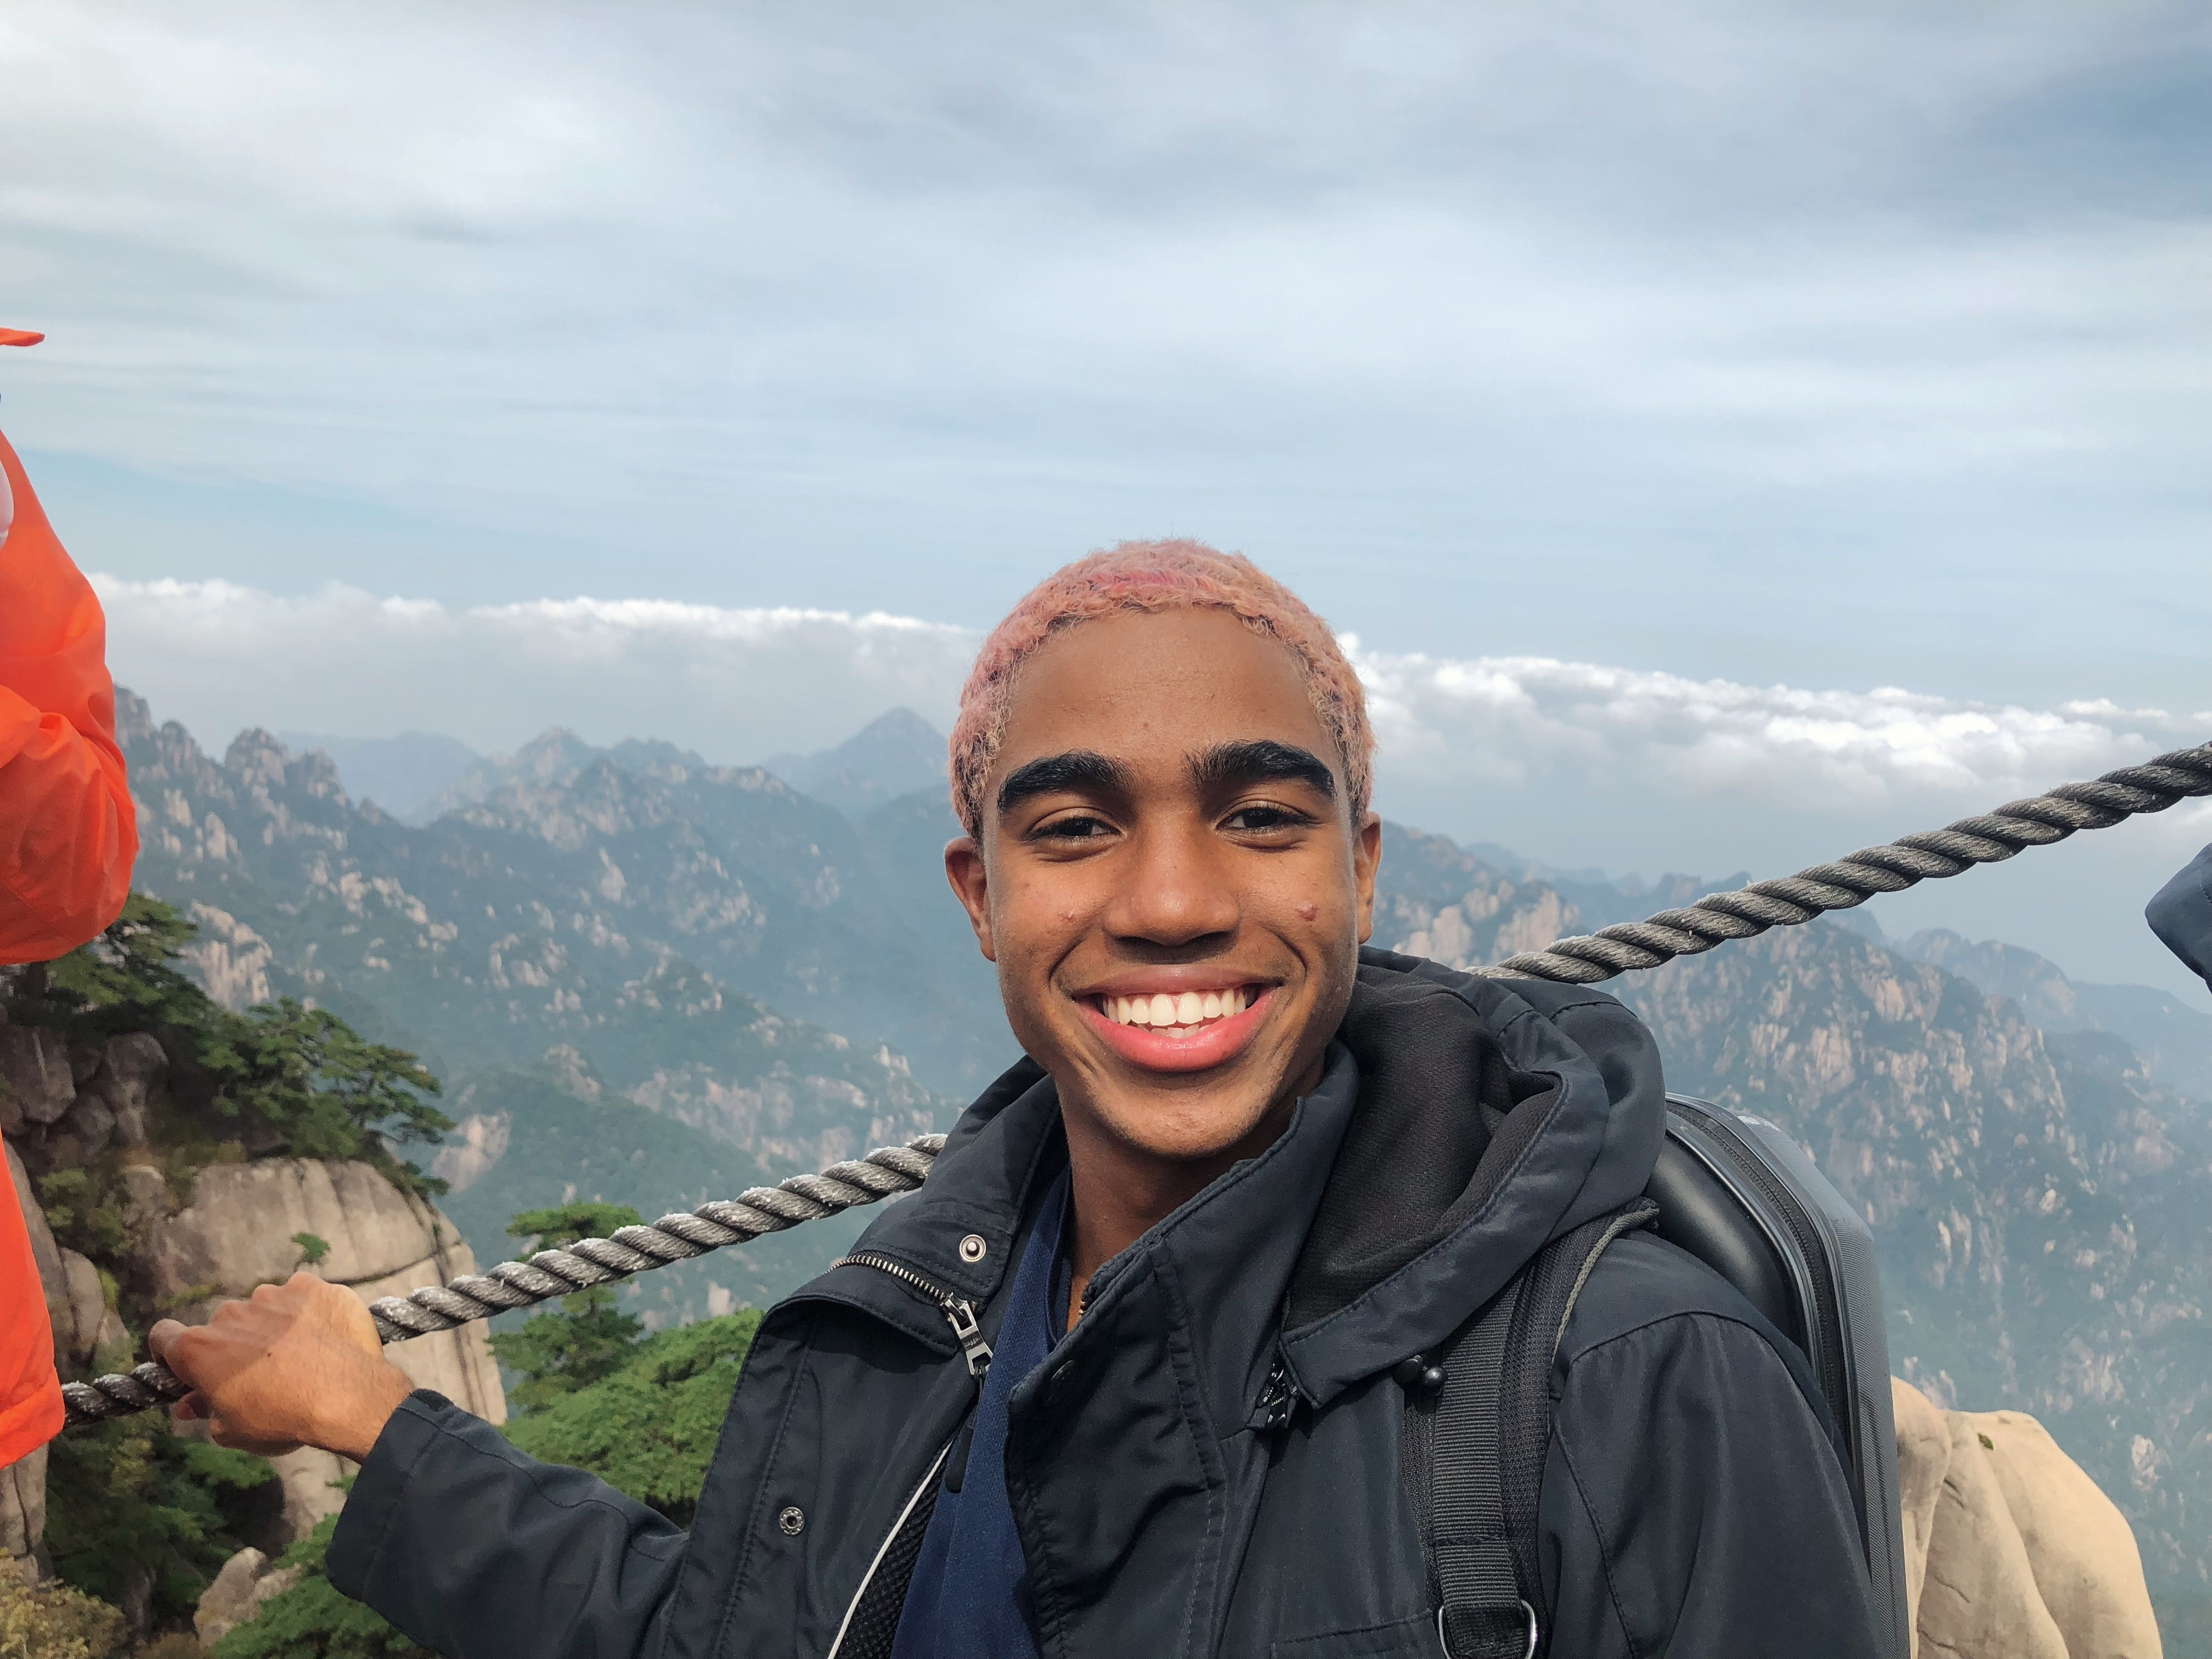 Business student Dimitri Pun holds a rope fence in front of a scenic view during his study abroad trip to Shanghai.